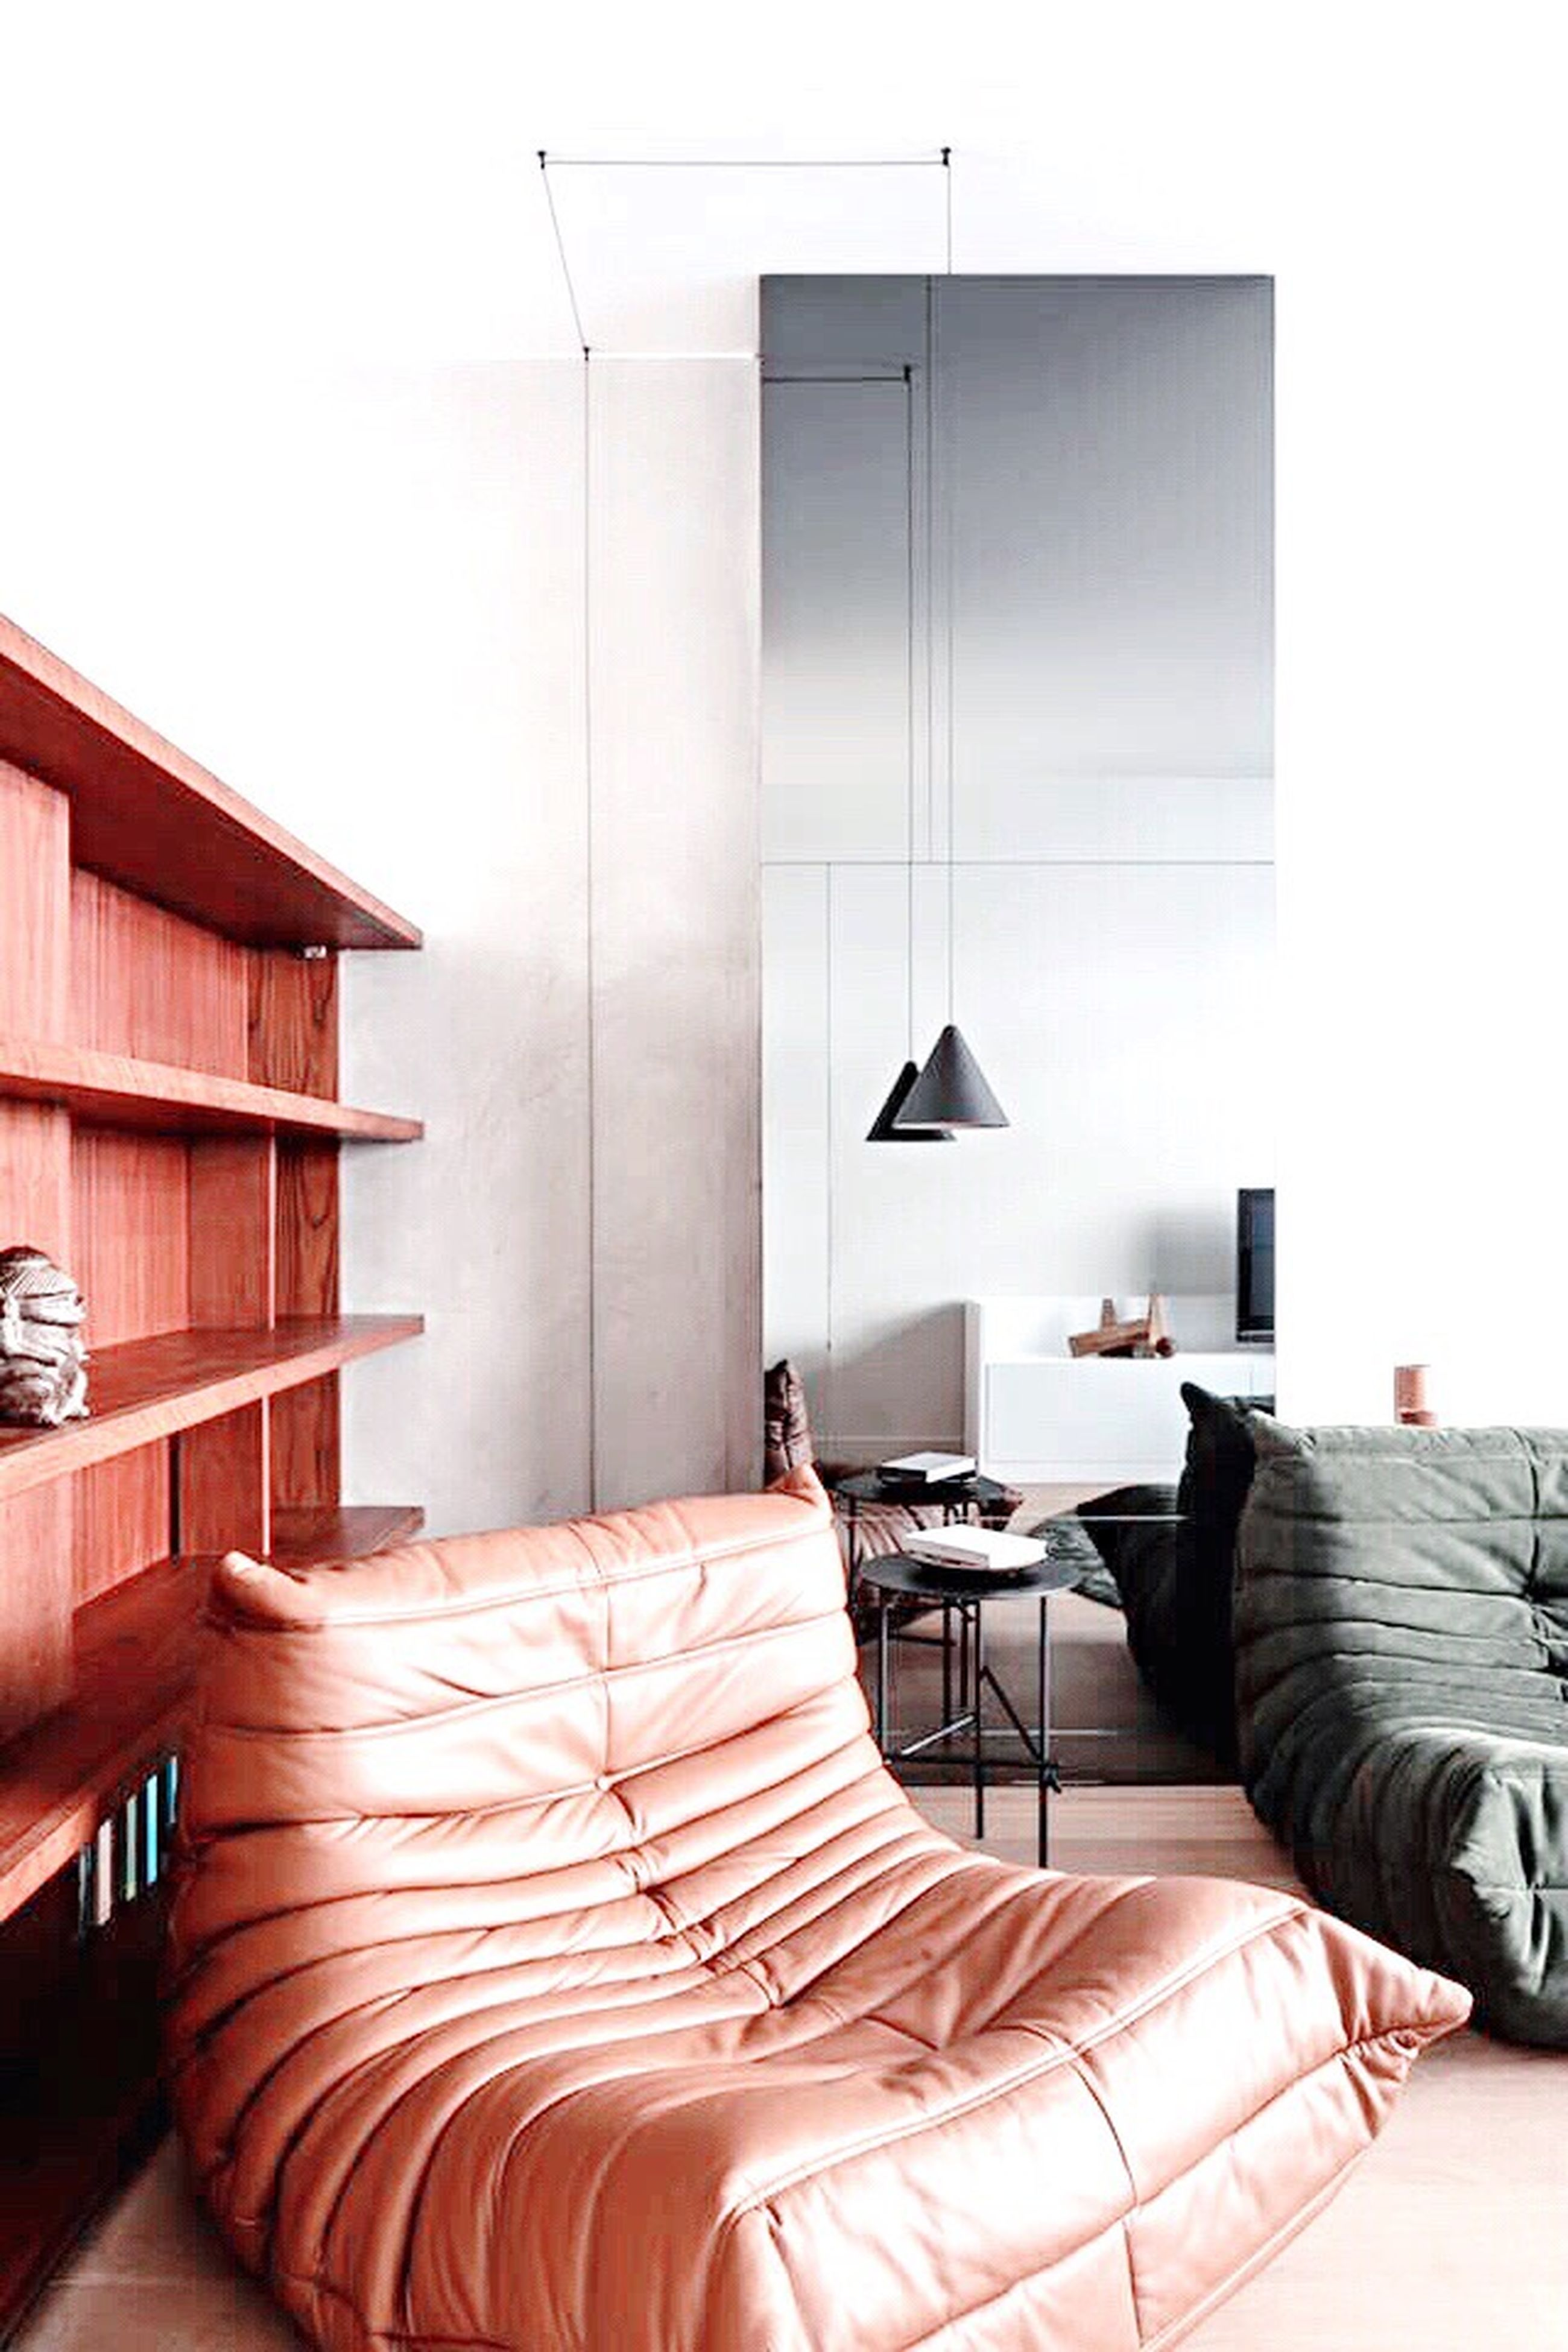 indoors, absence, chair, home showcase interior, house, empty, architecture, built structure, home interior, sofa, comfortable, modern, order, red